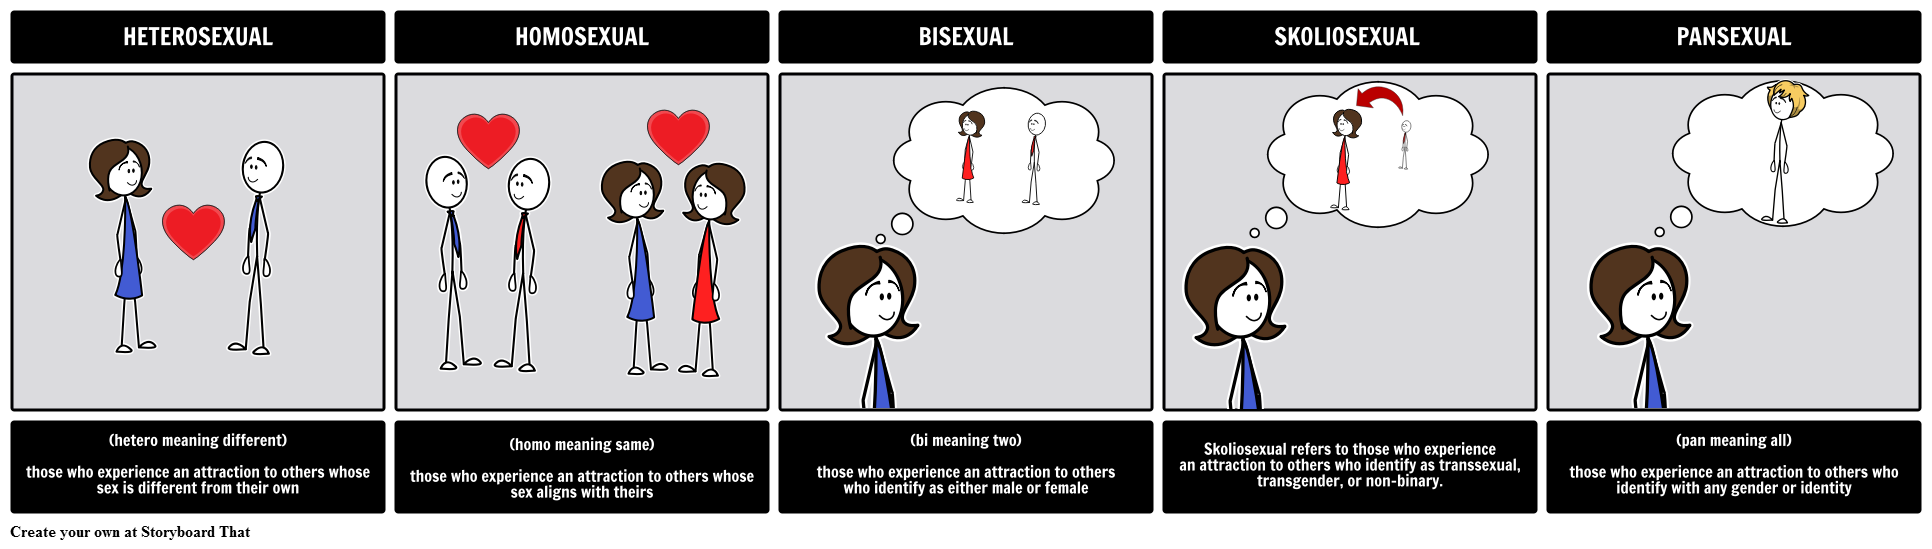 Sexuality Terminology